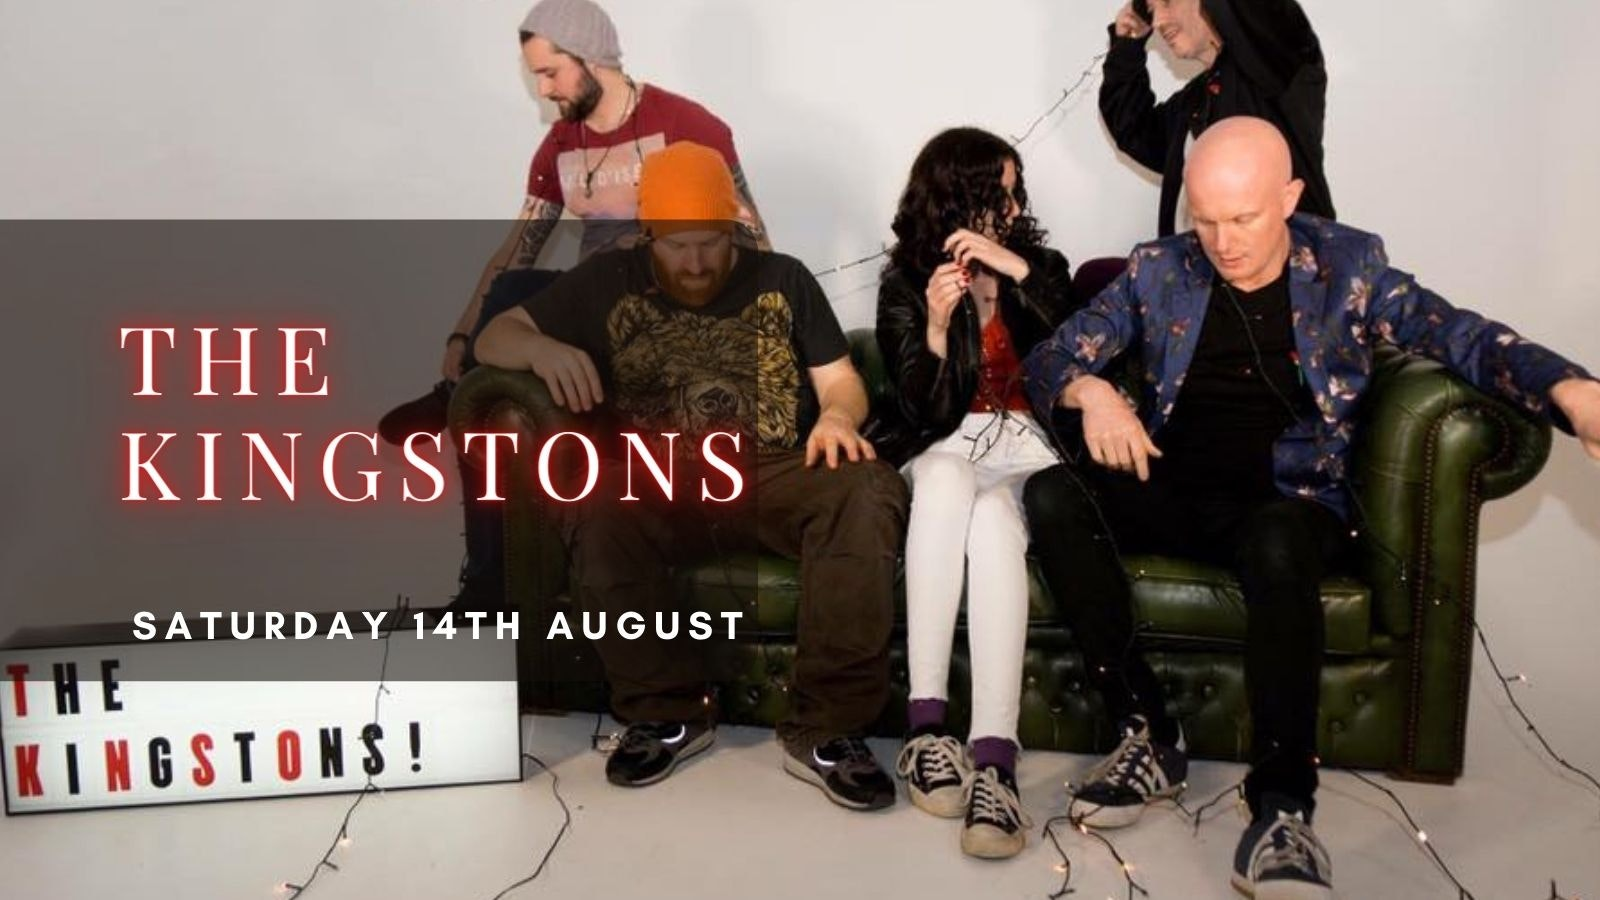 THE KINGSTONS | Plymouth, Annabel's Cabaret & Discotheque